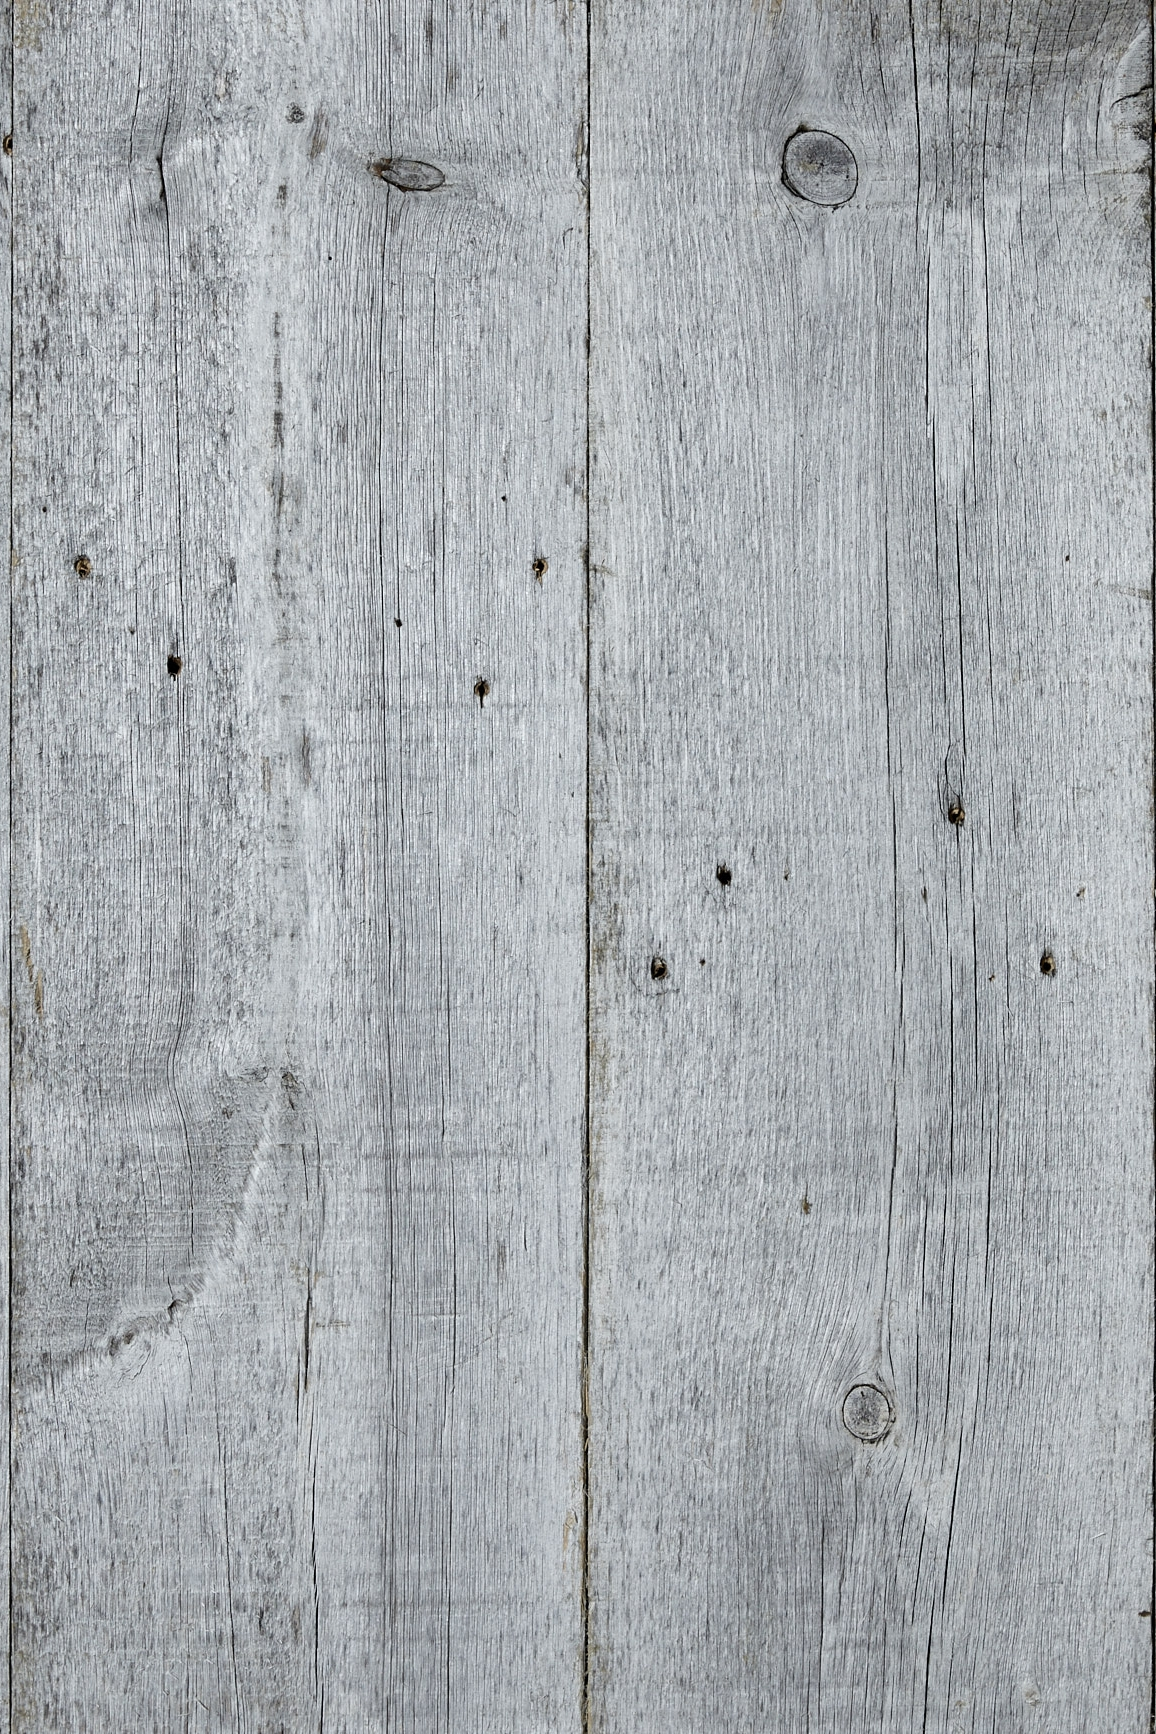 SILVER PINES PANELING